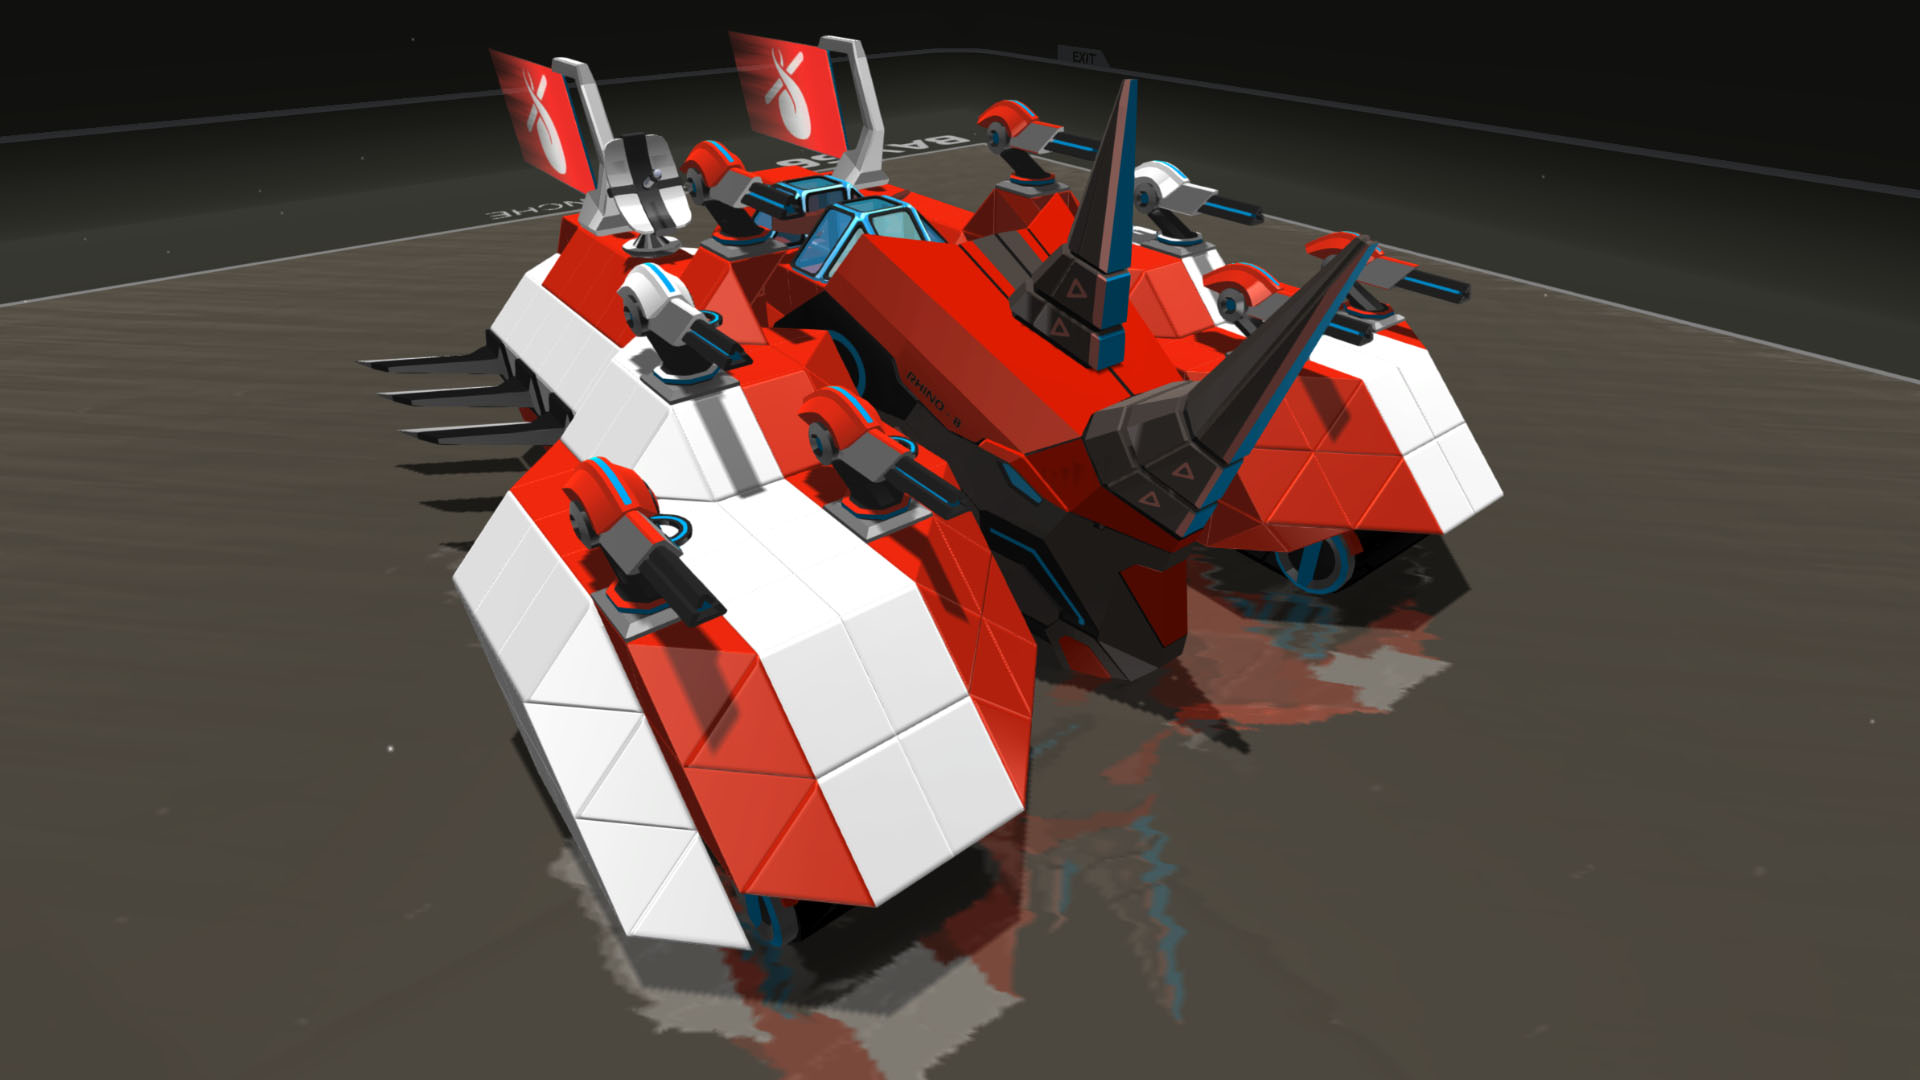 Robocraft Wallpapers High Quality | Download Free